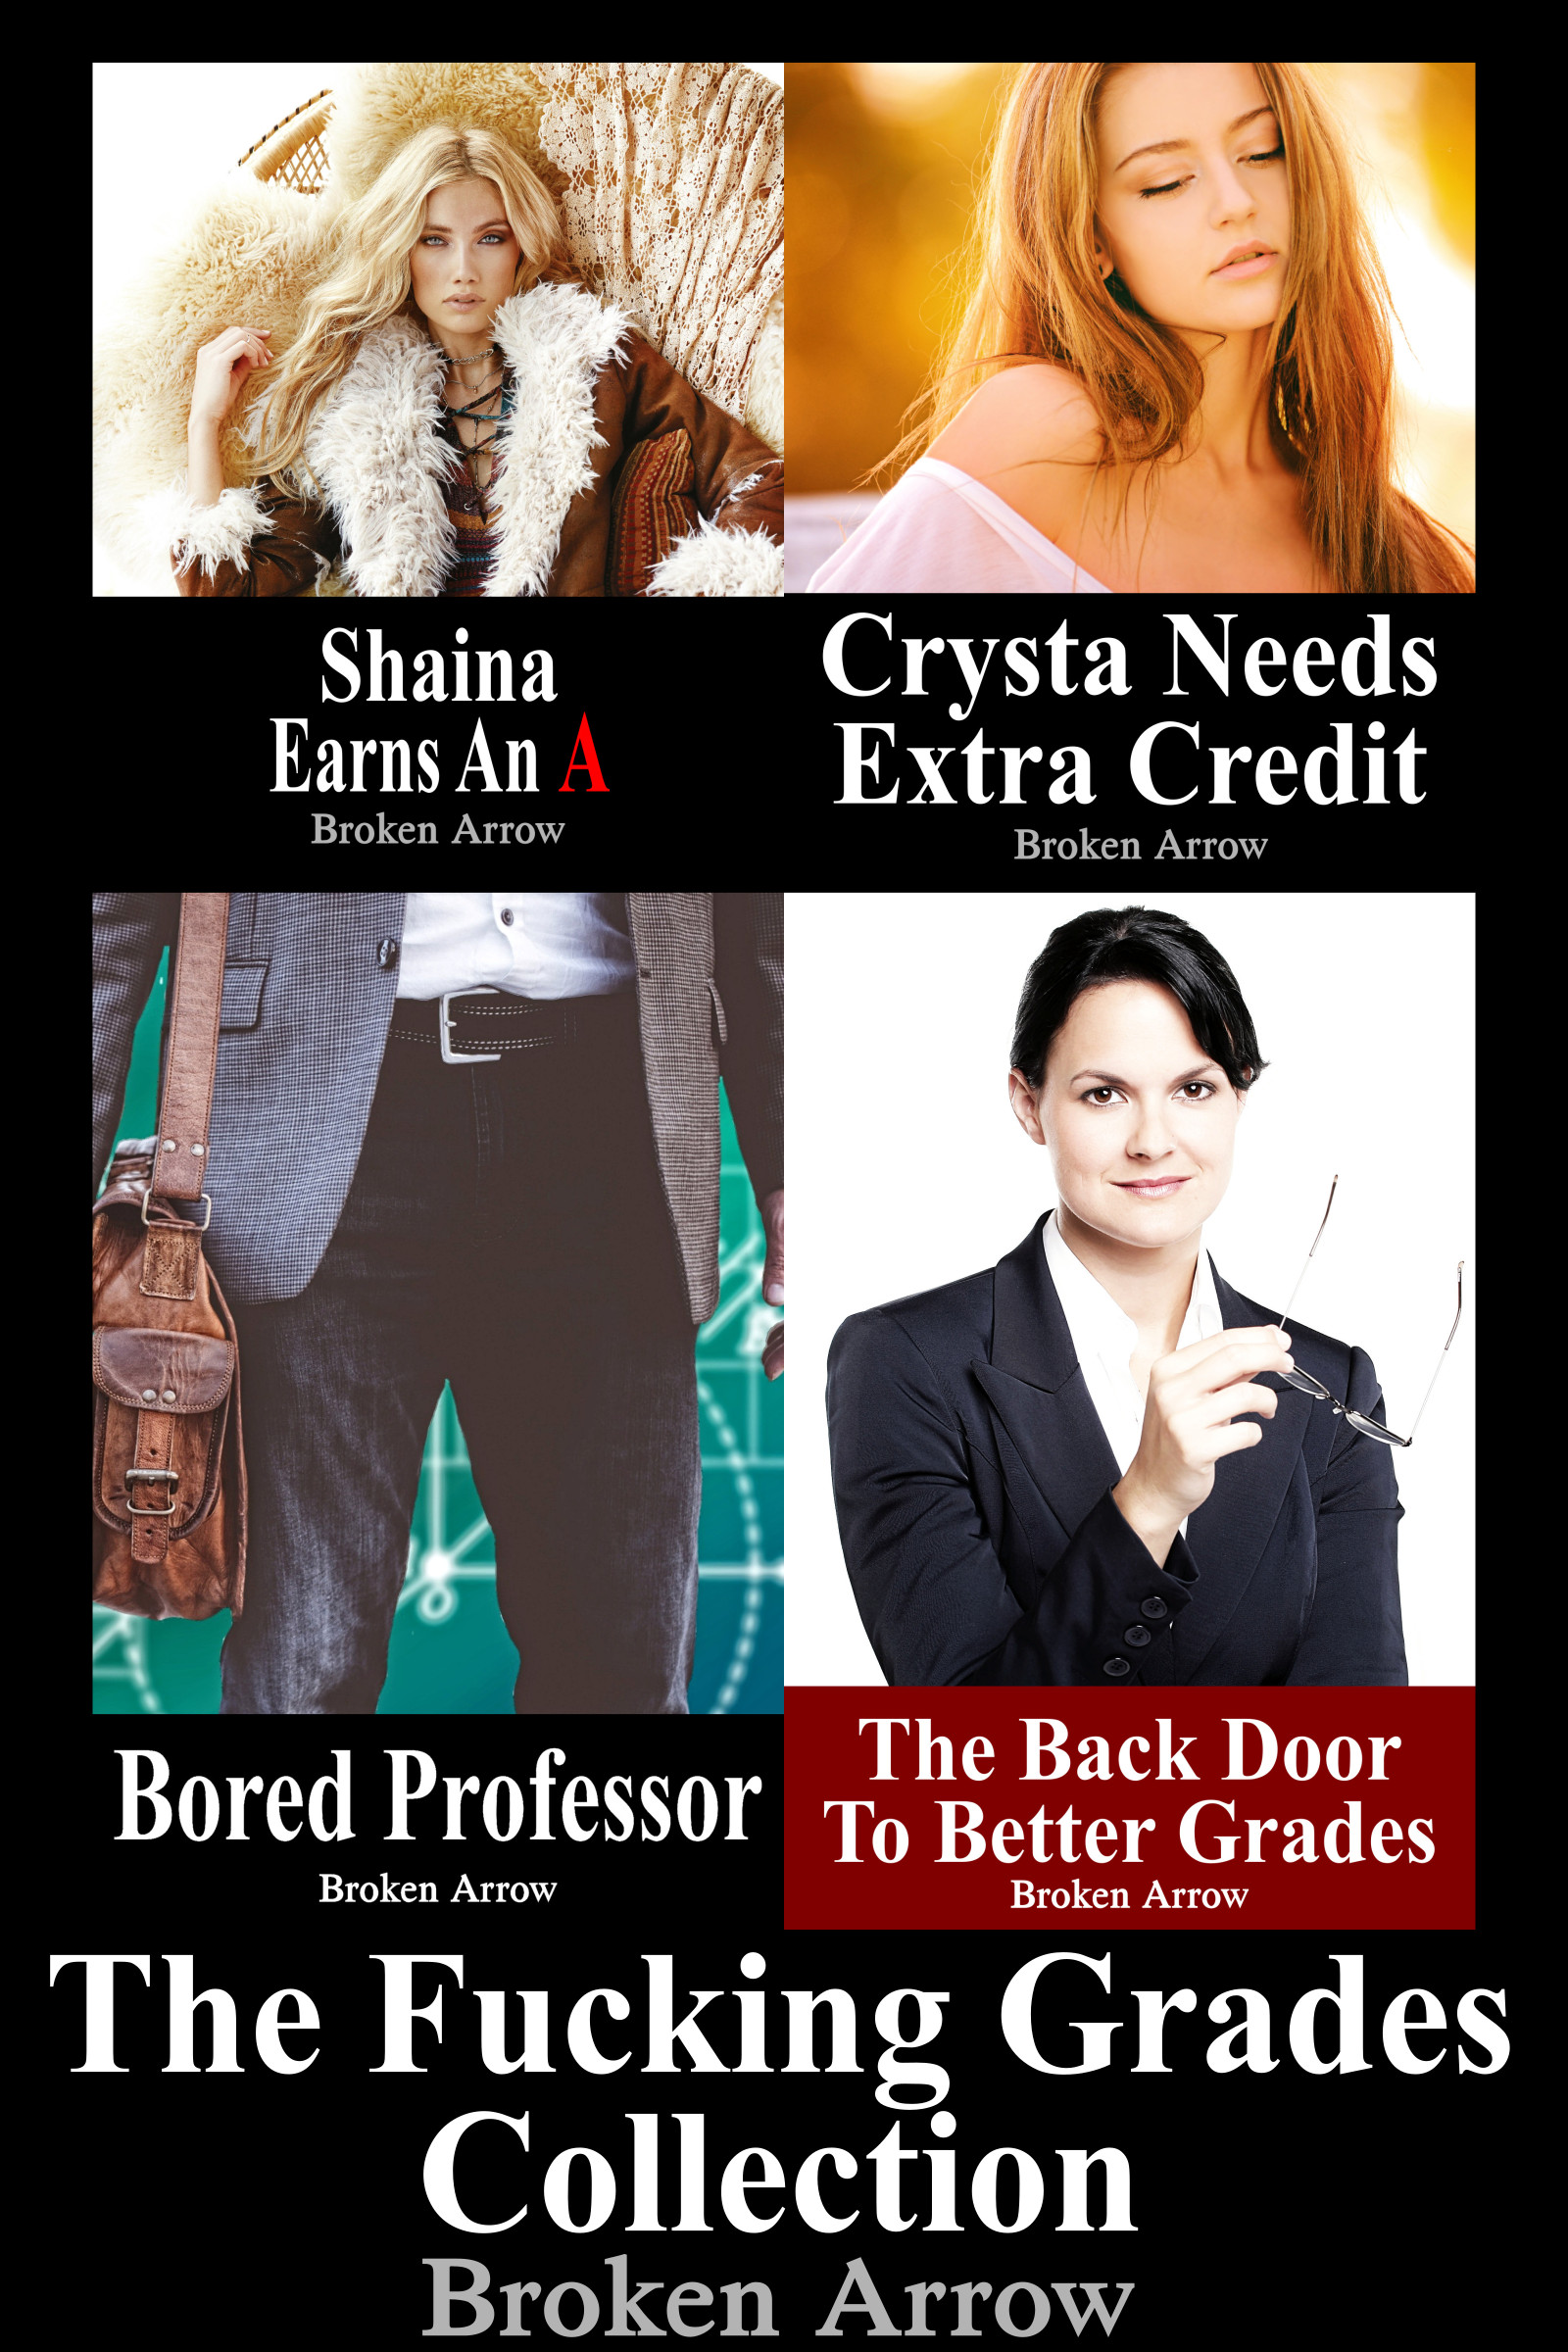 The Fucking Grades Collection